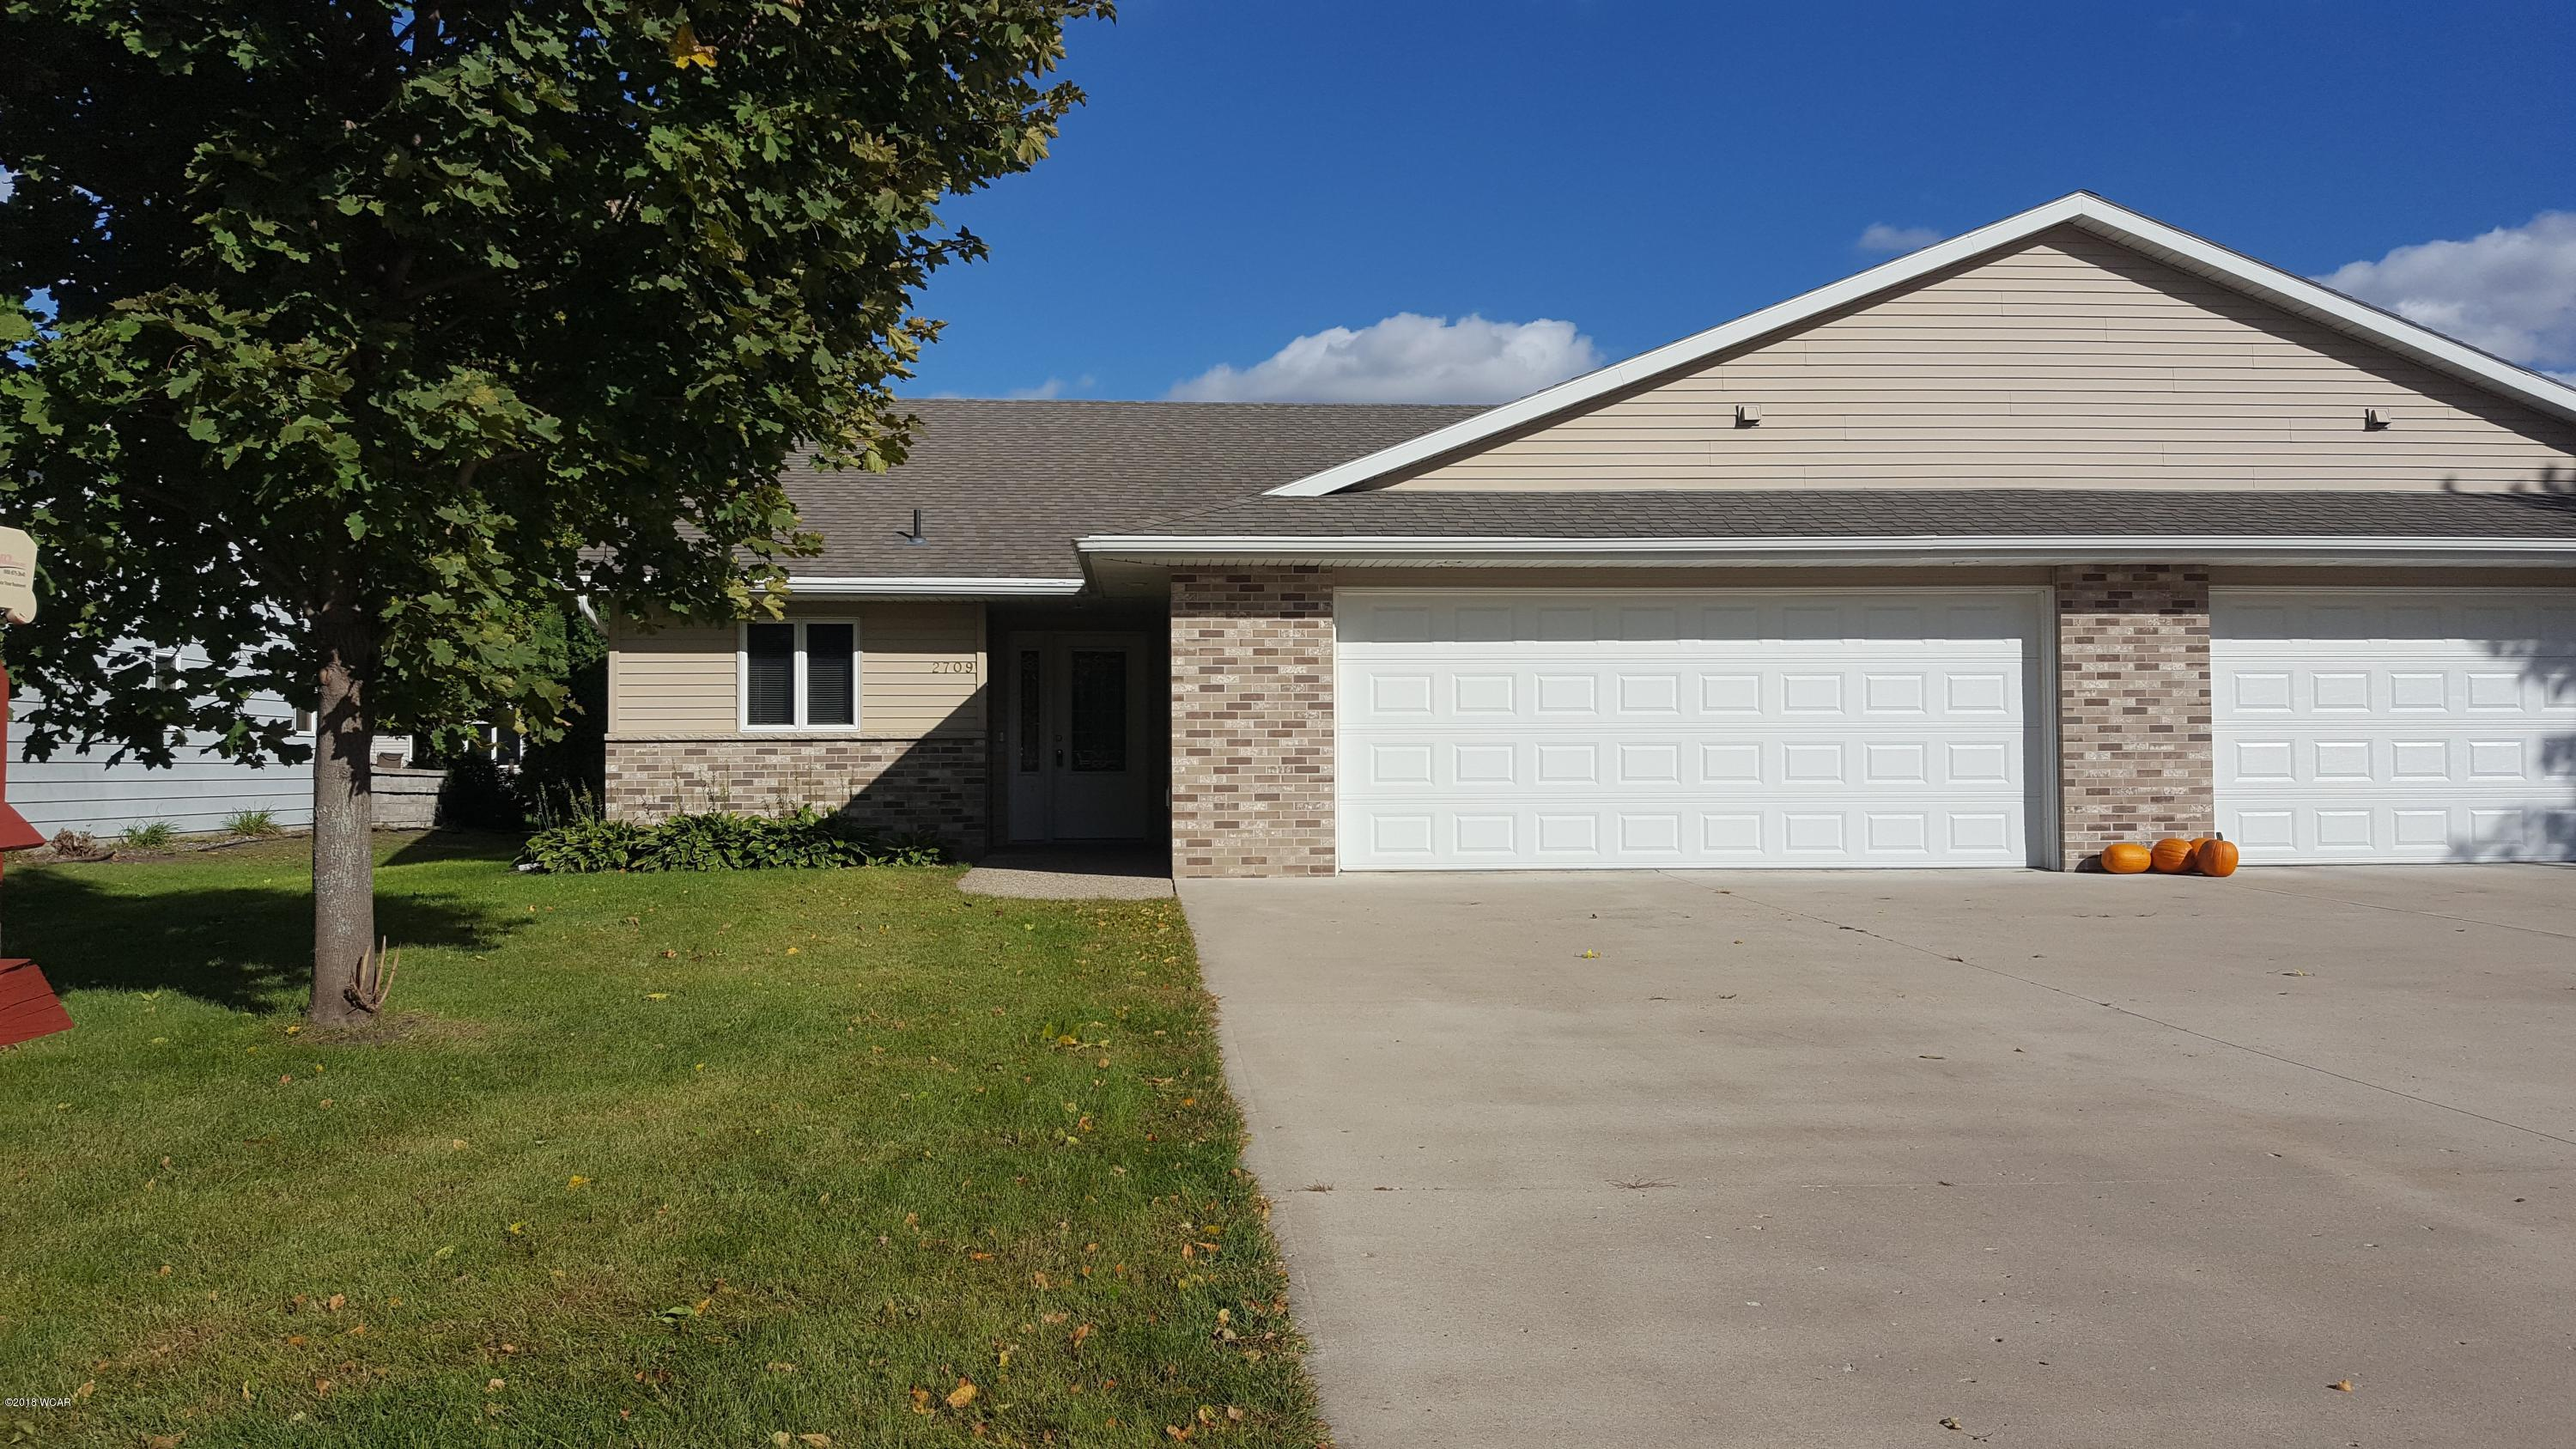 2709 6th Street,Willmar,2 Bedrooms Bedrooms,2 BathroomsBathrooms,Single Family,6th Street,6032484